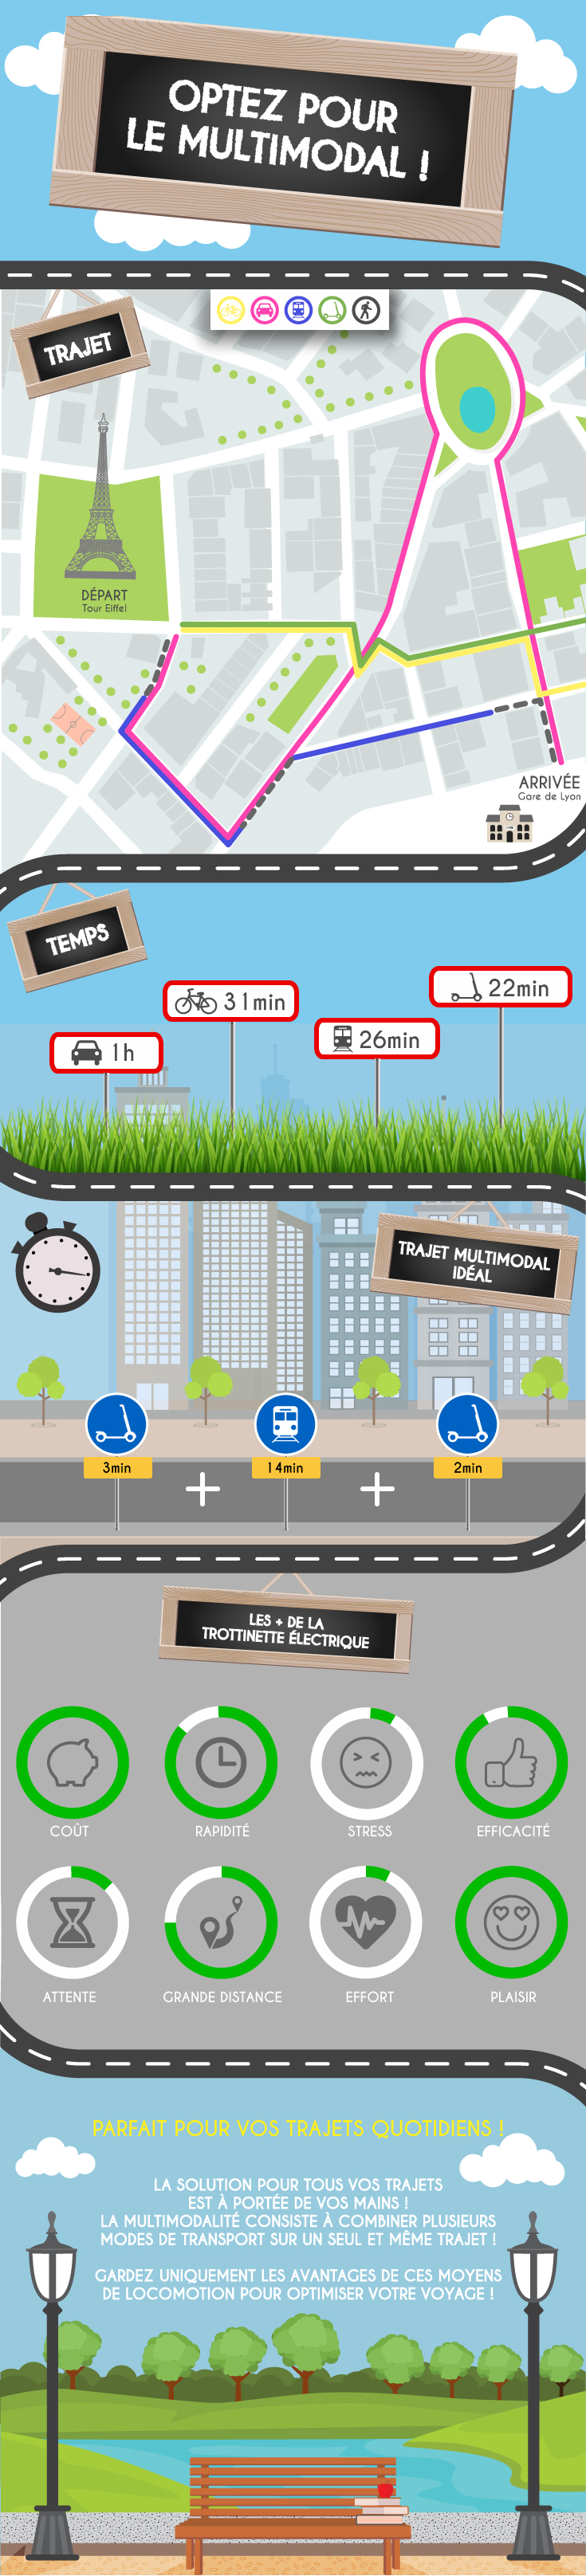 Infographie-multimodal-faustine